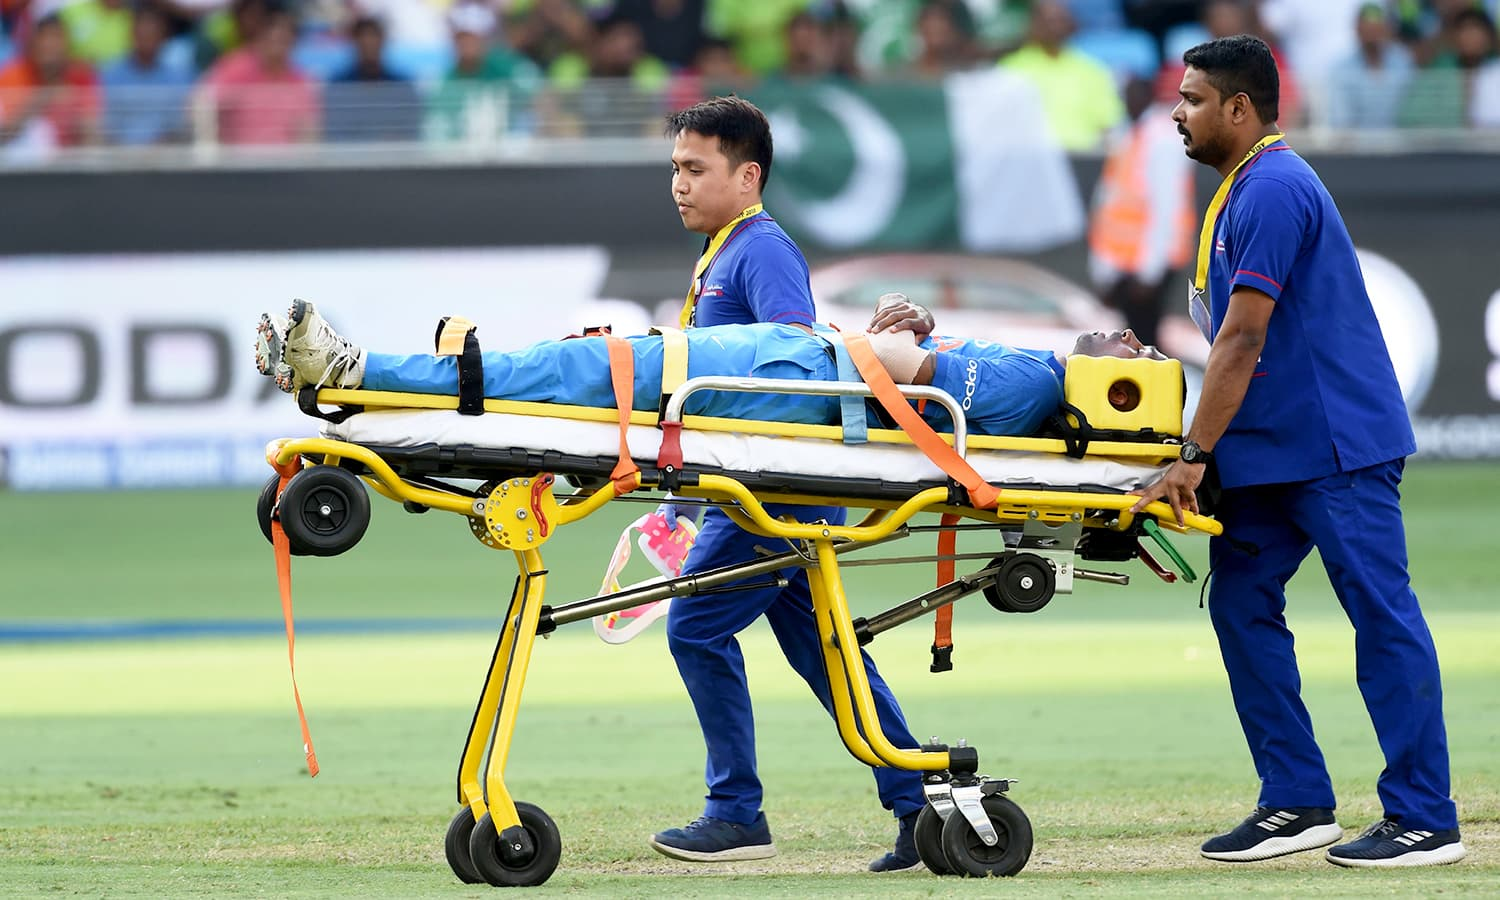 Indian cricketer Hardik Pandya is transported with an injury. — AFP